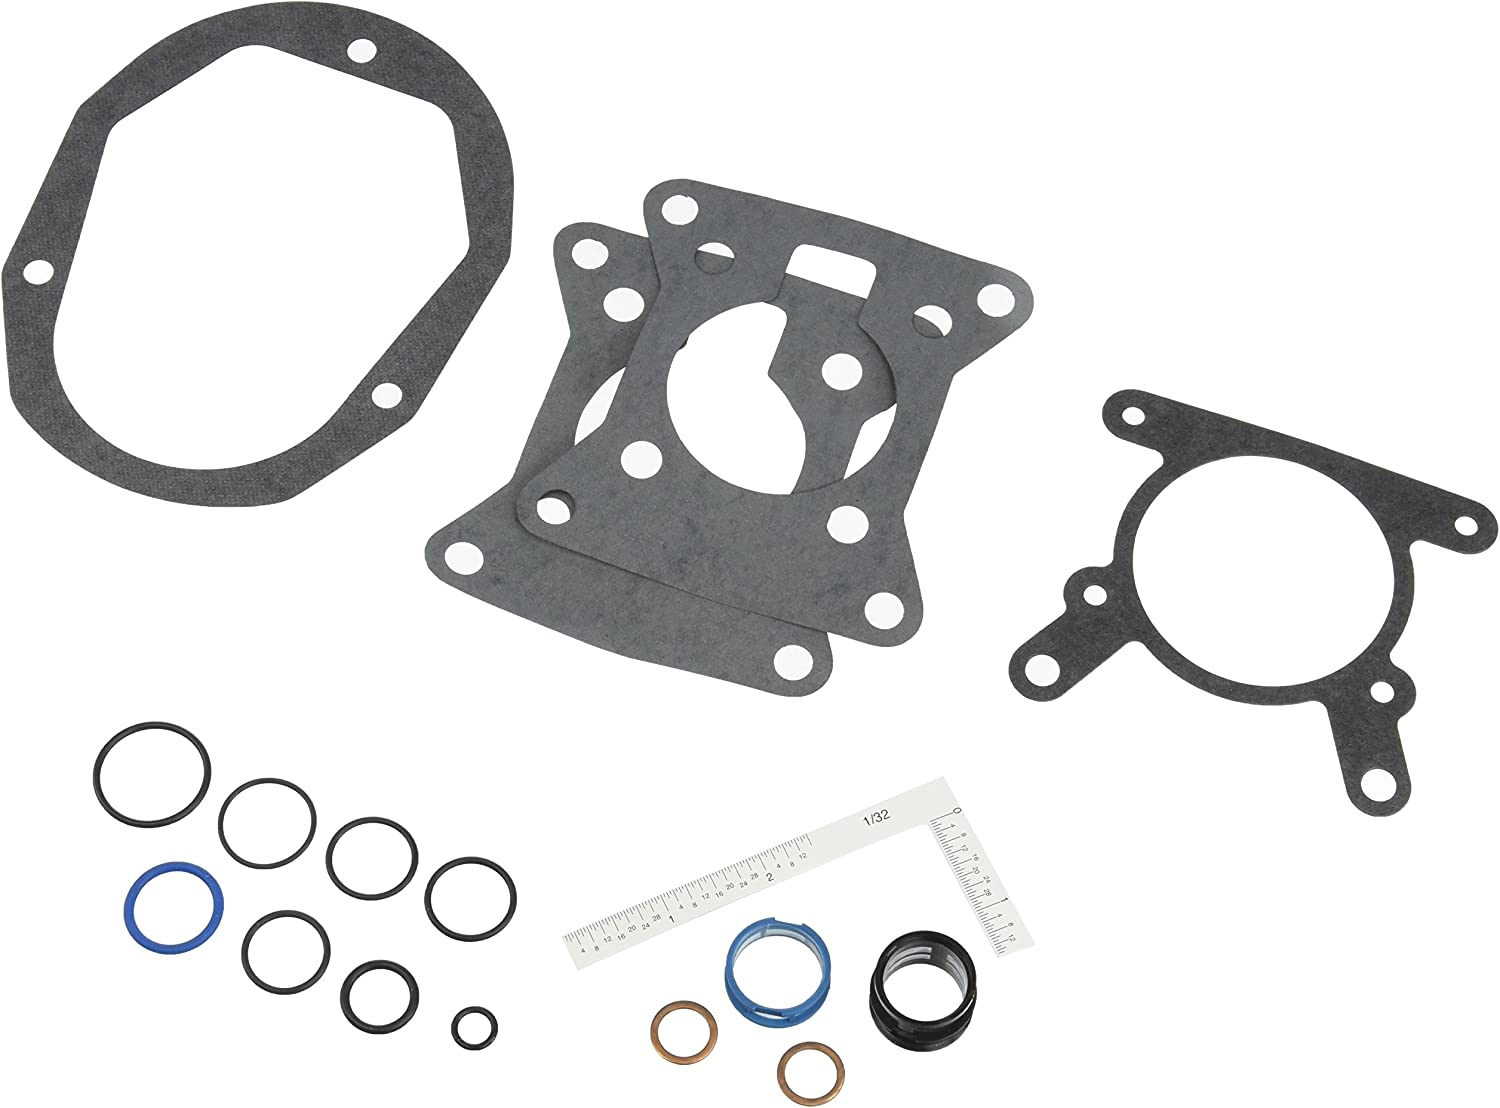 Max 70% OFF Standard Motor Products TBI 1705 Bombing free shipping Kit